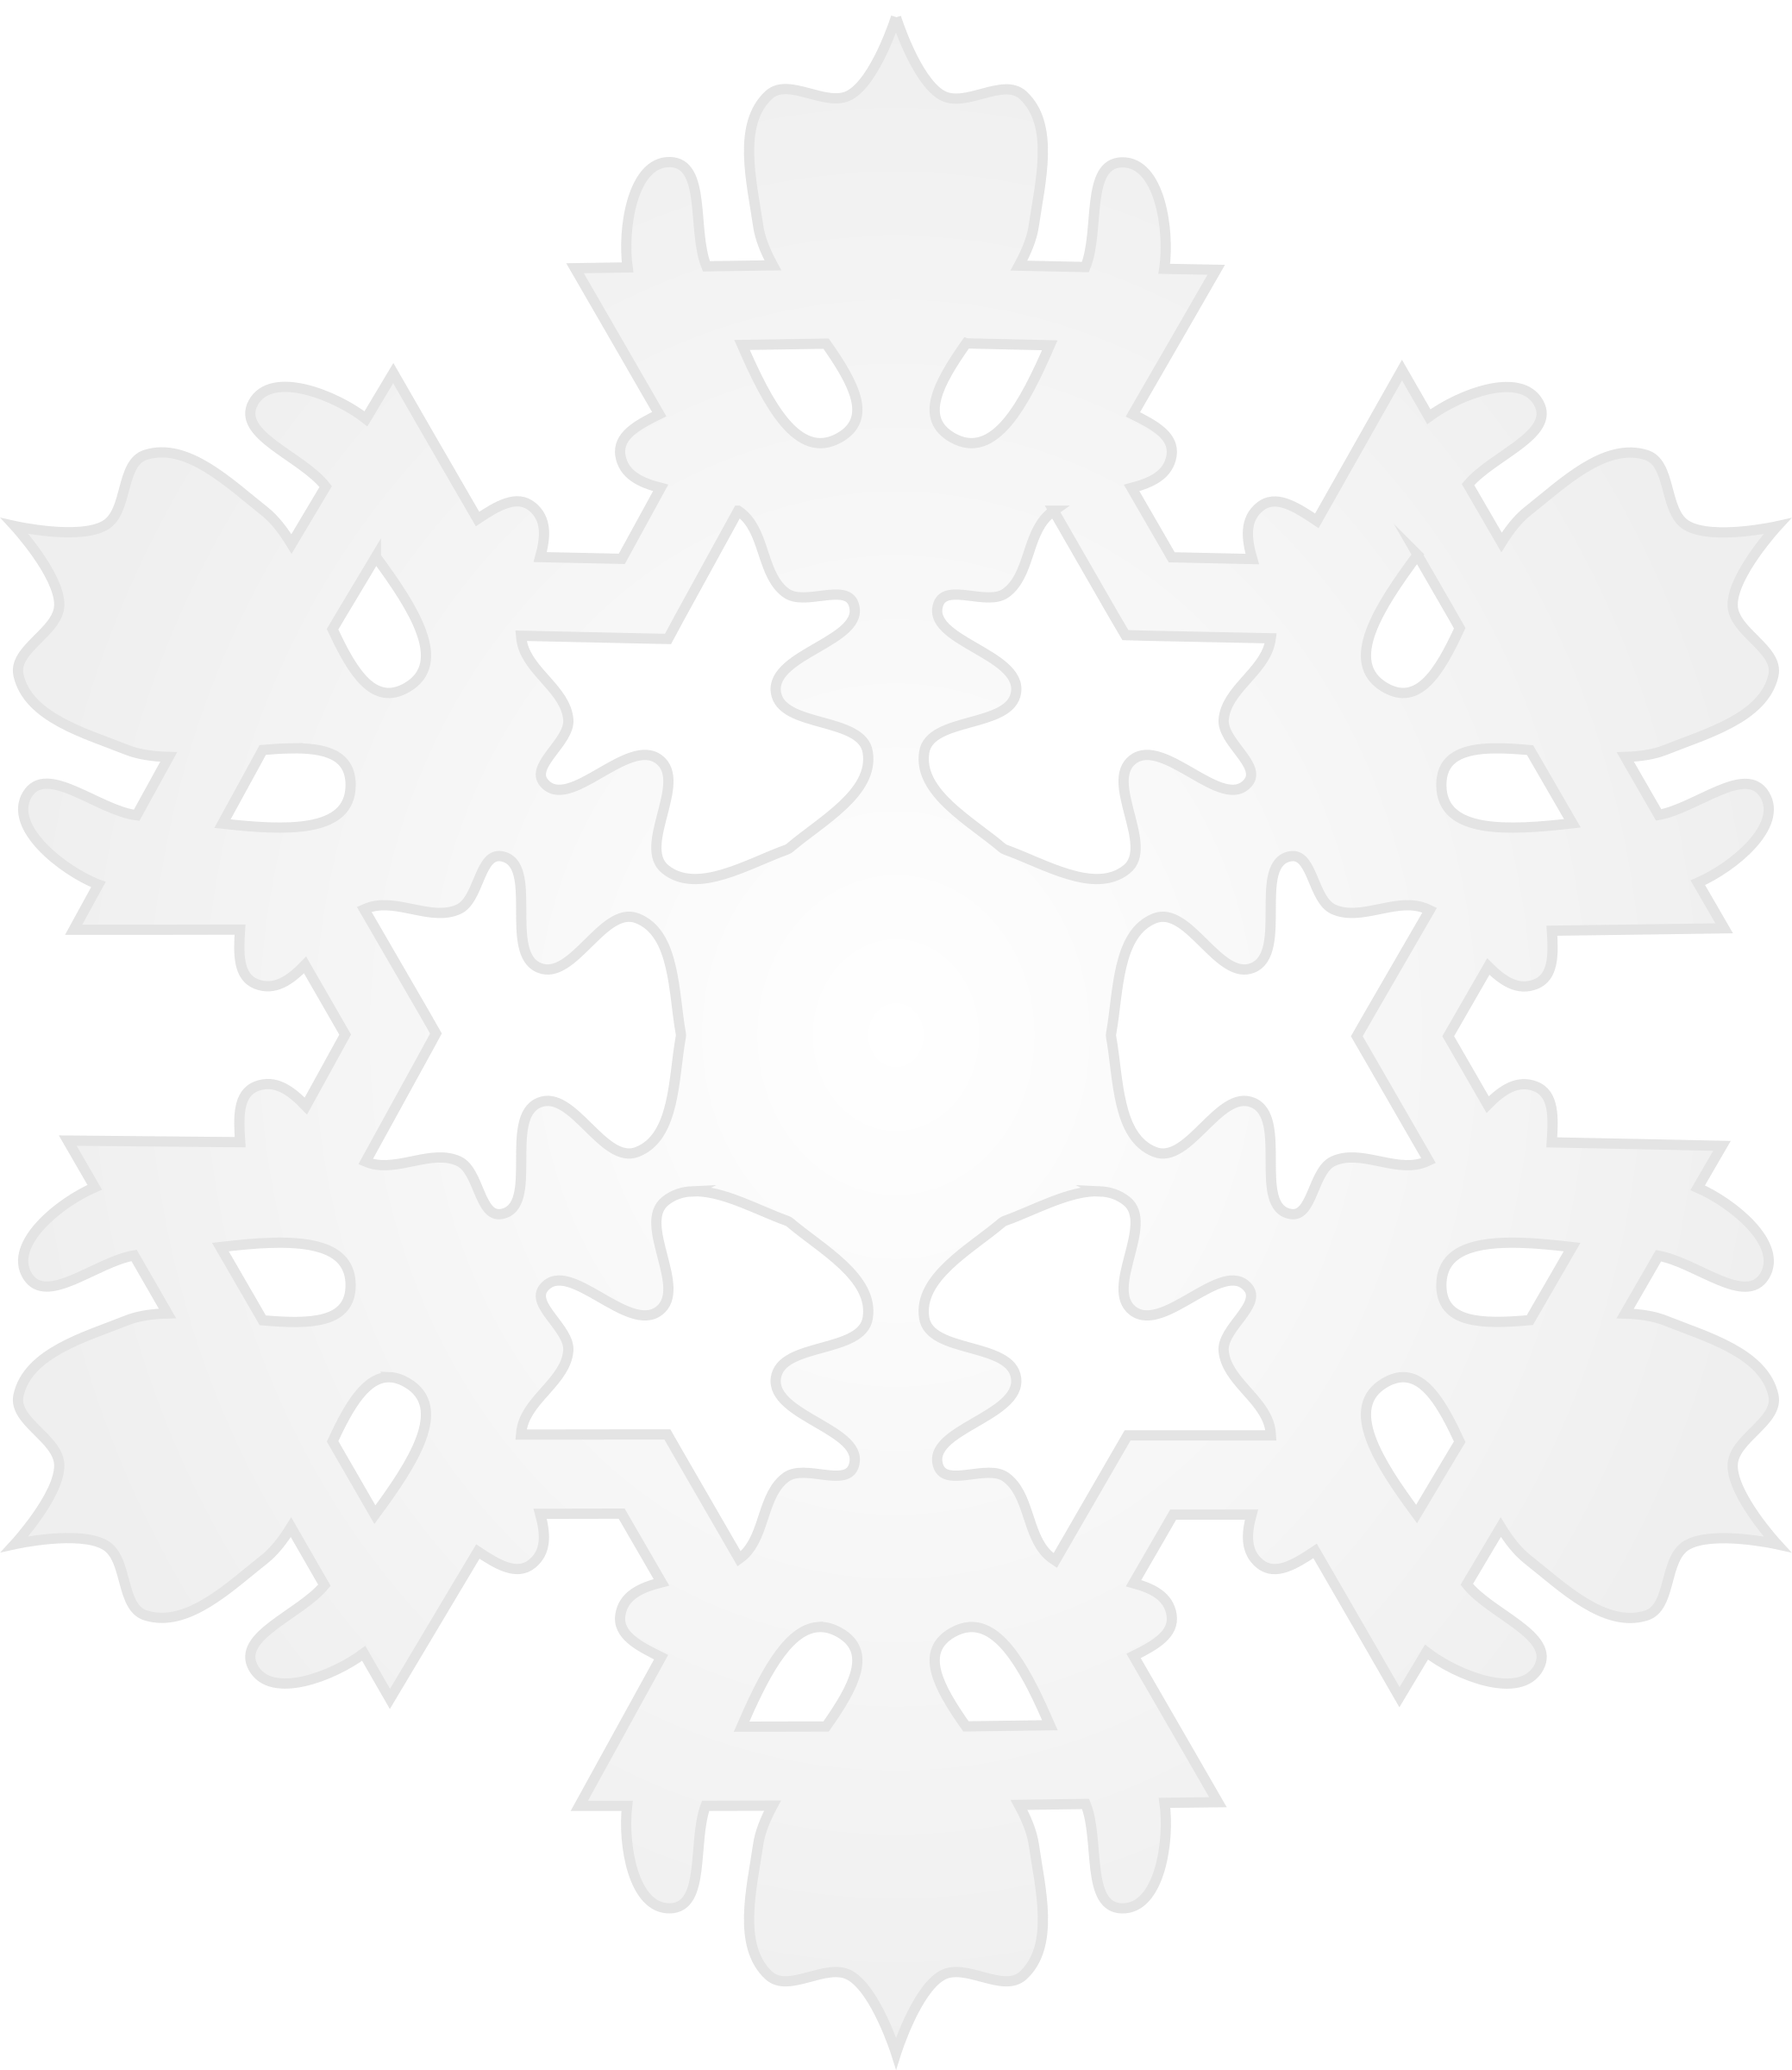 Microsoft office clipart snowflake black free clip black and white stock Clipart - Snowflake 5 clip black and white stock